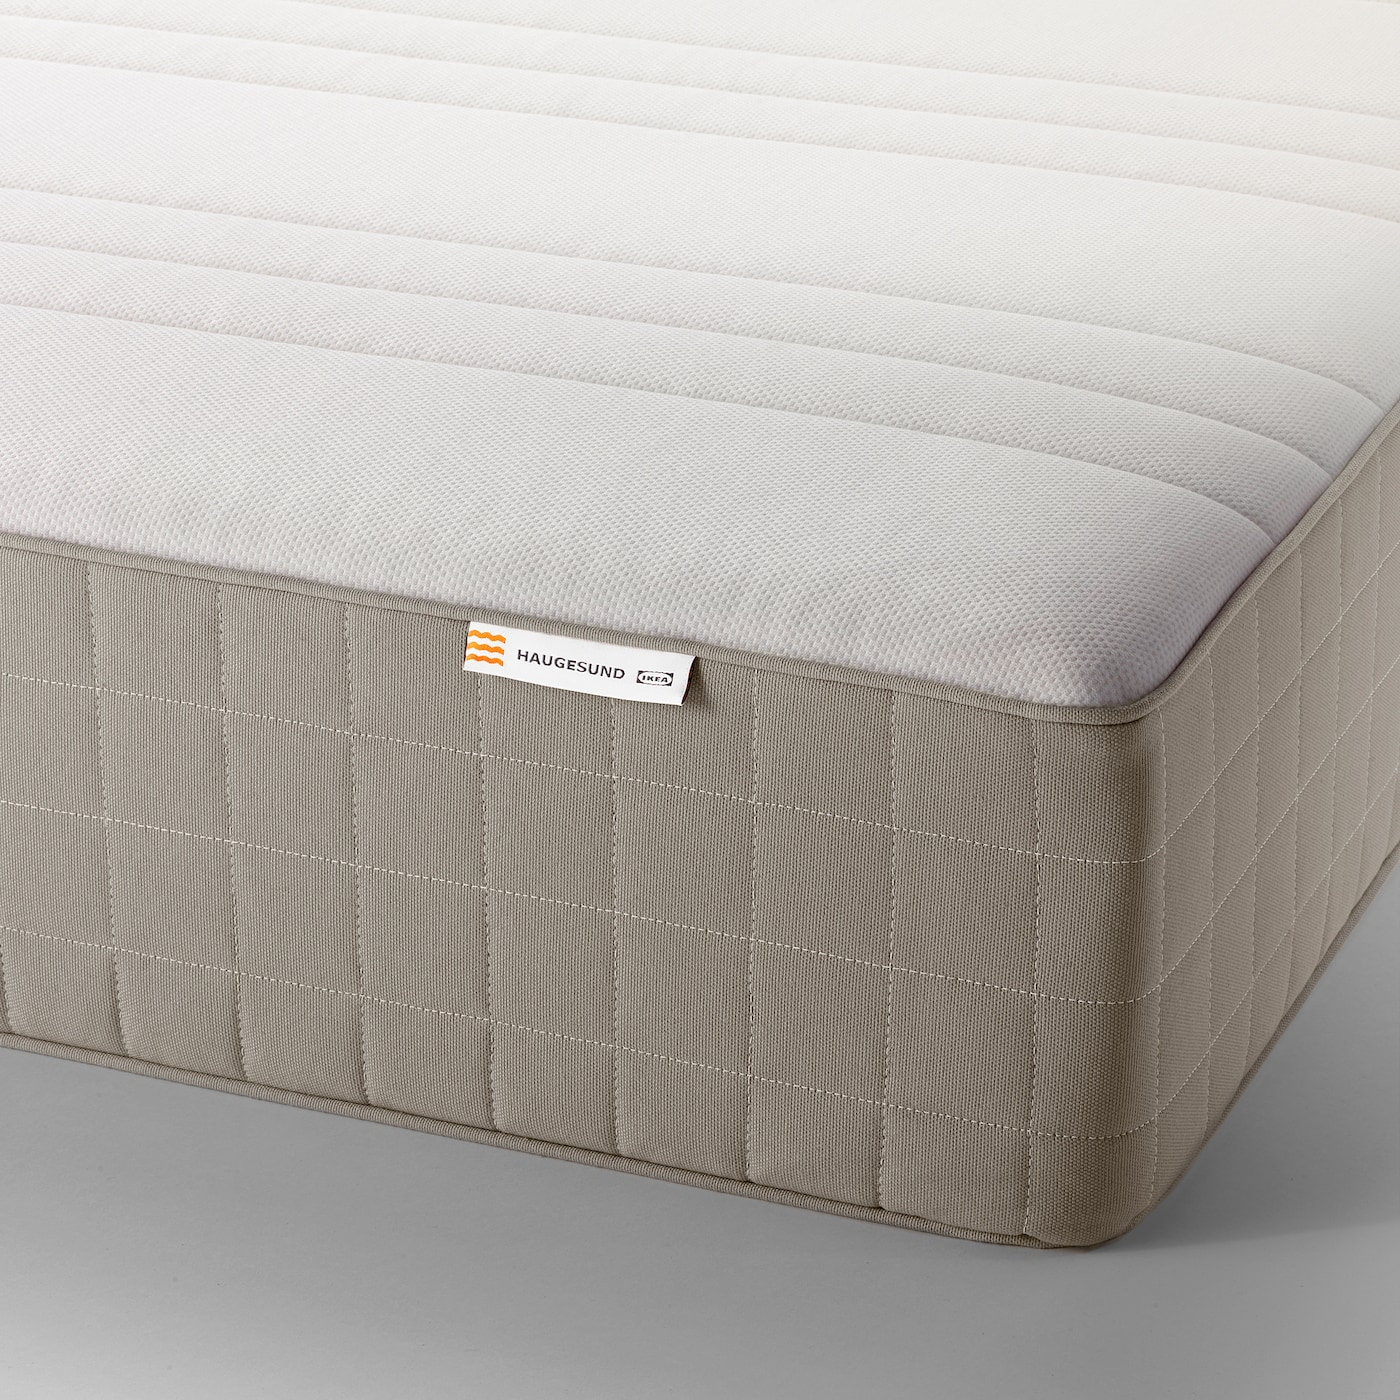 Ikea HAUGESUND Spring mattress, medium firm, dark beige, Queen